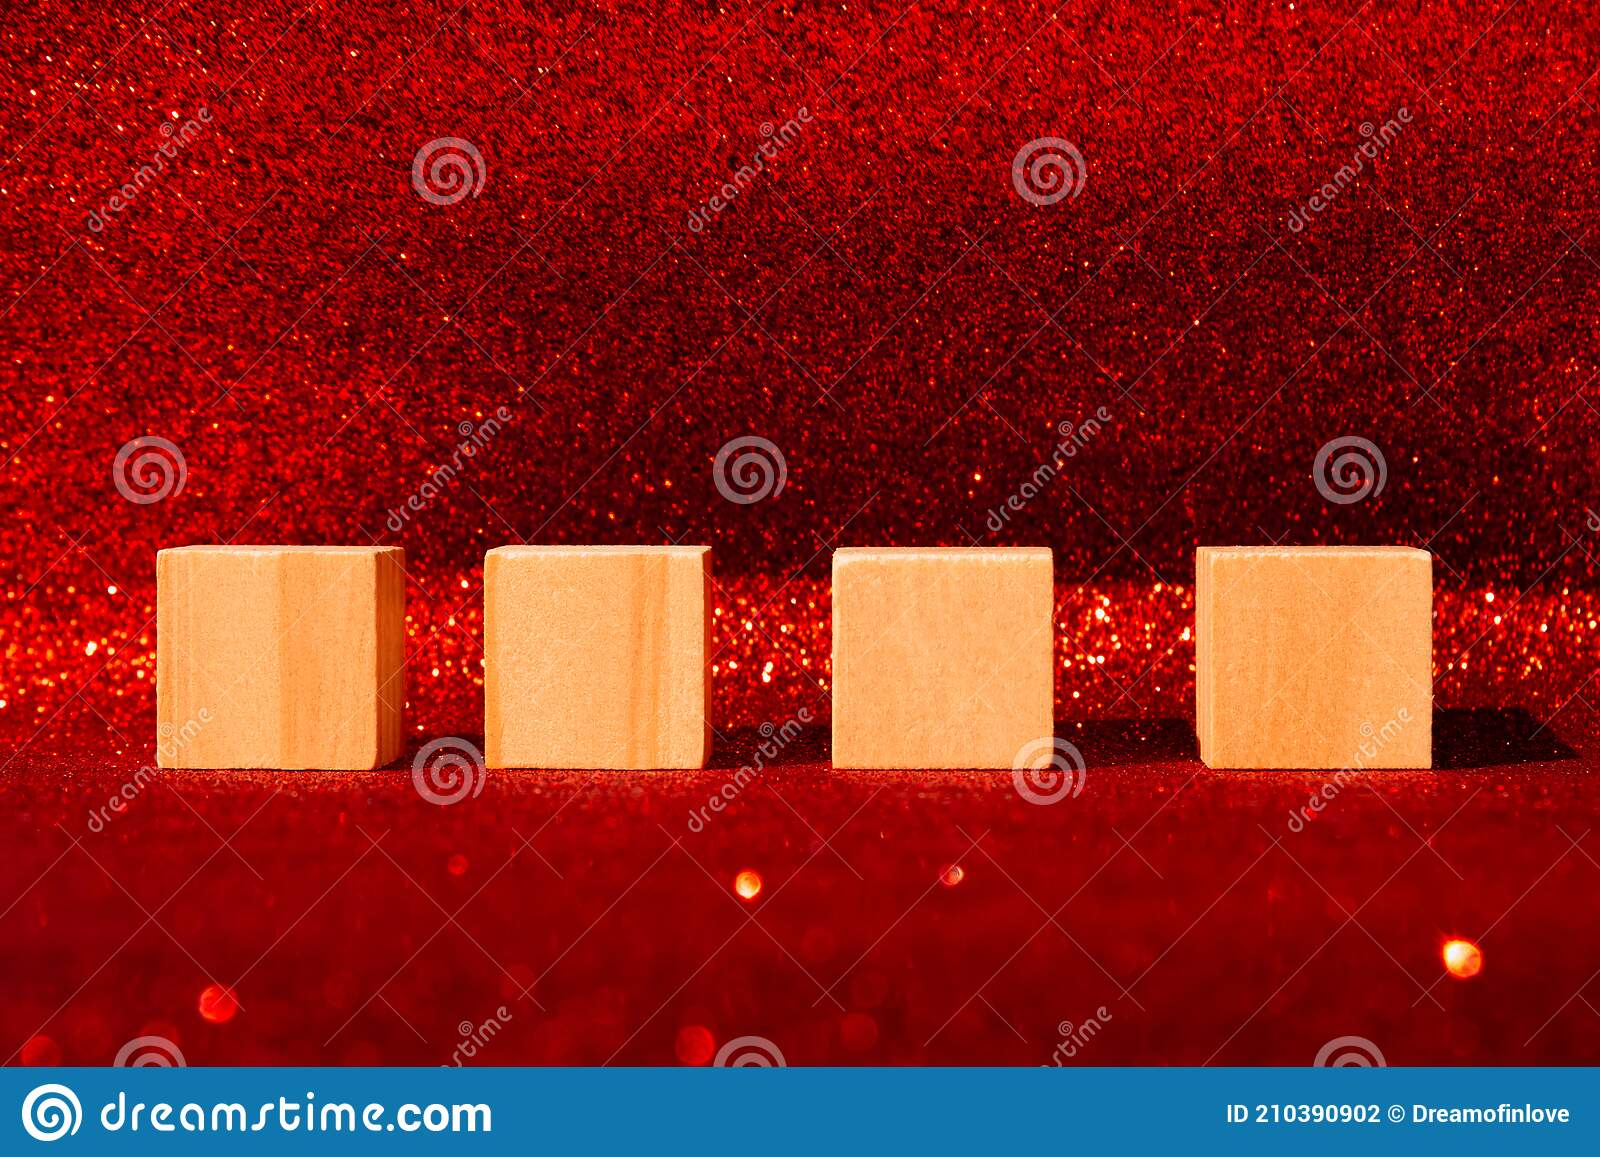 219 Background Modern Red Text Wallpaper Word Photos Free Royalty Free Stock Photos From Dreamstime